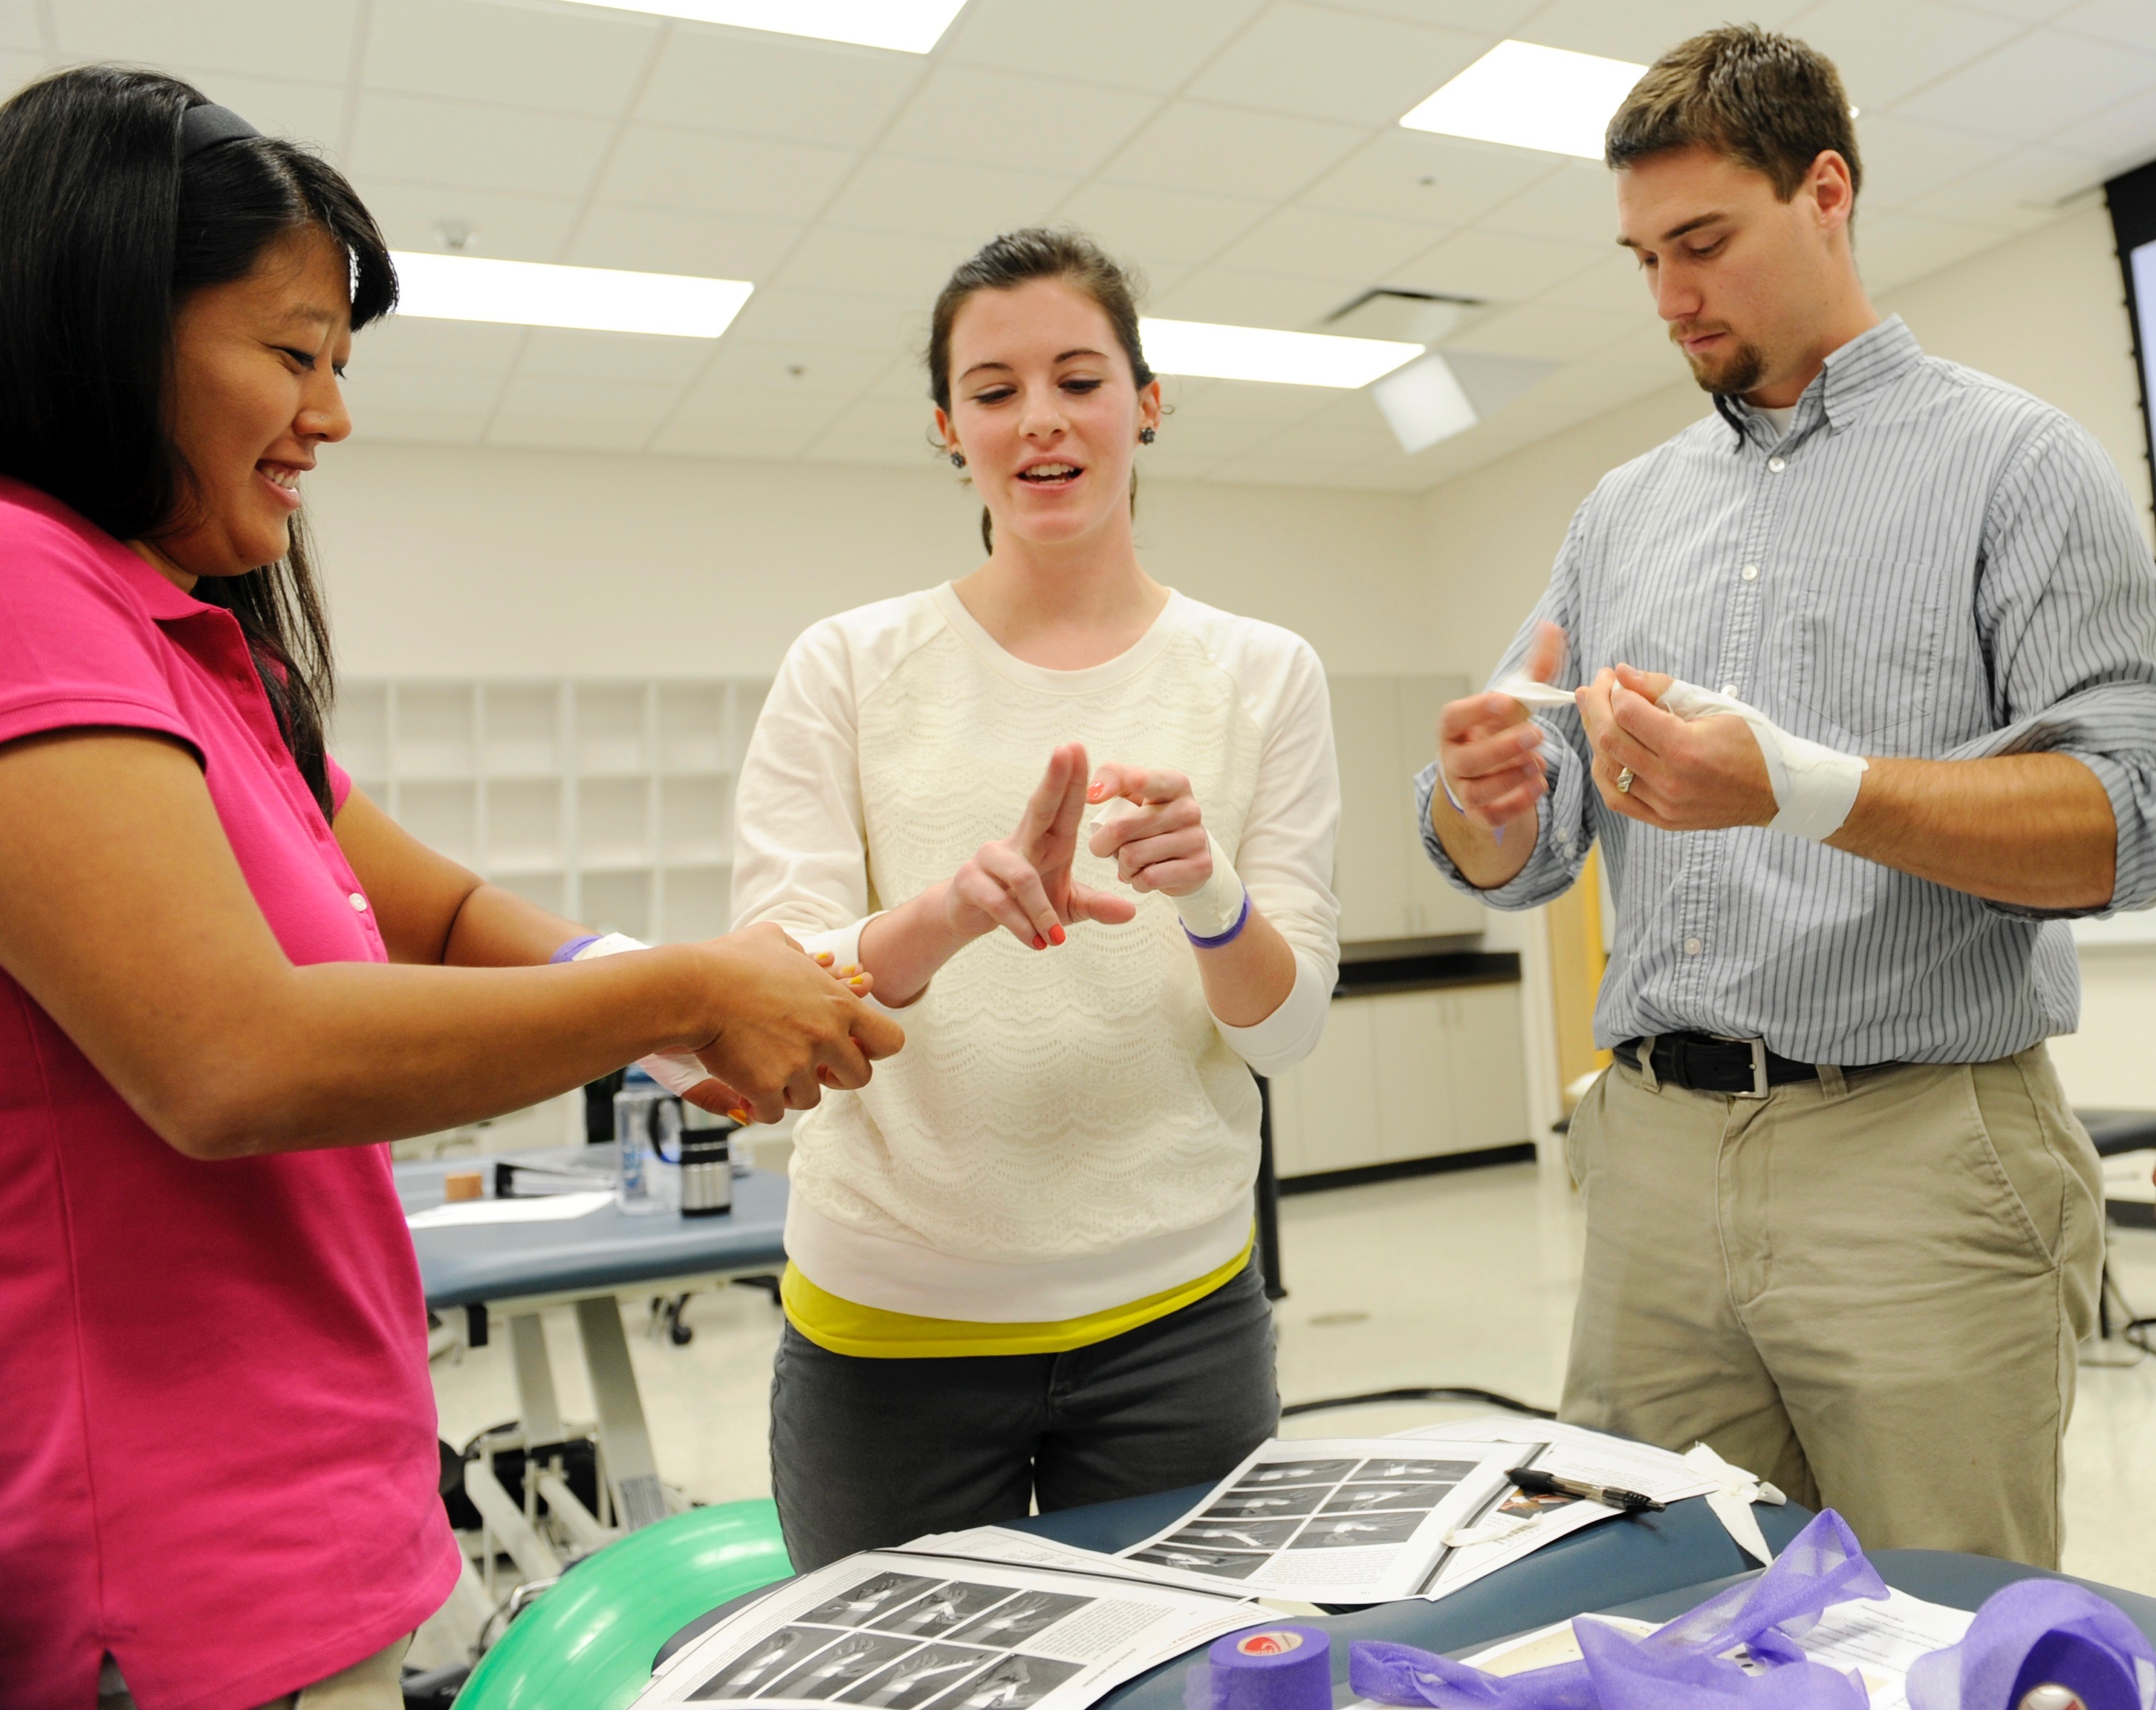 Physical Therapy similarities between high school and college